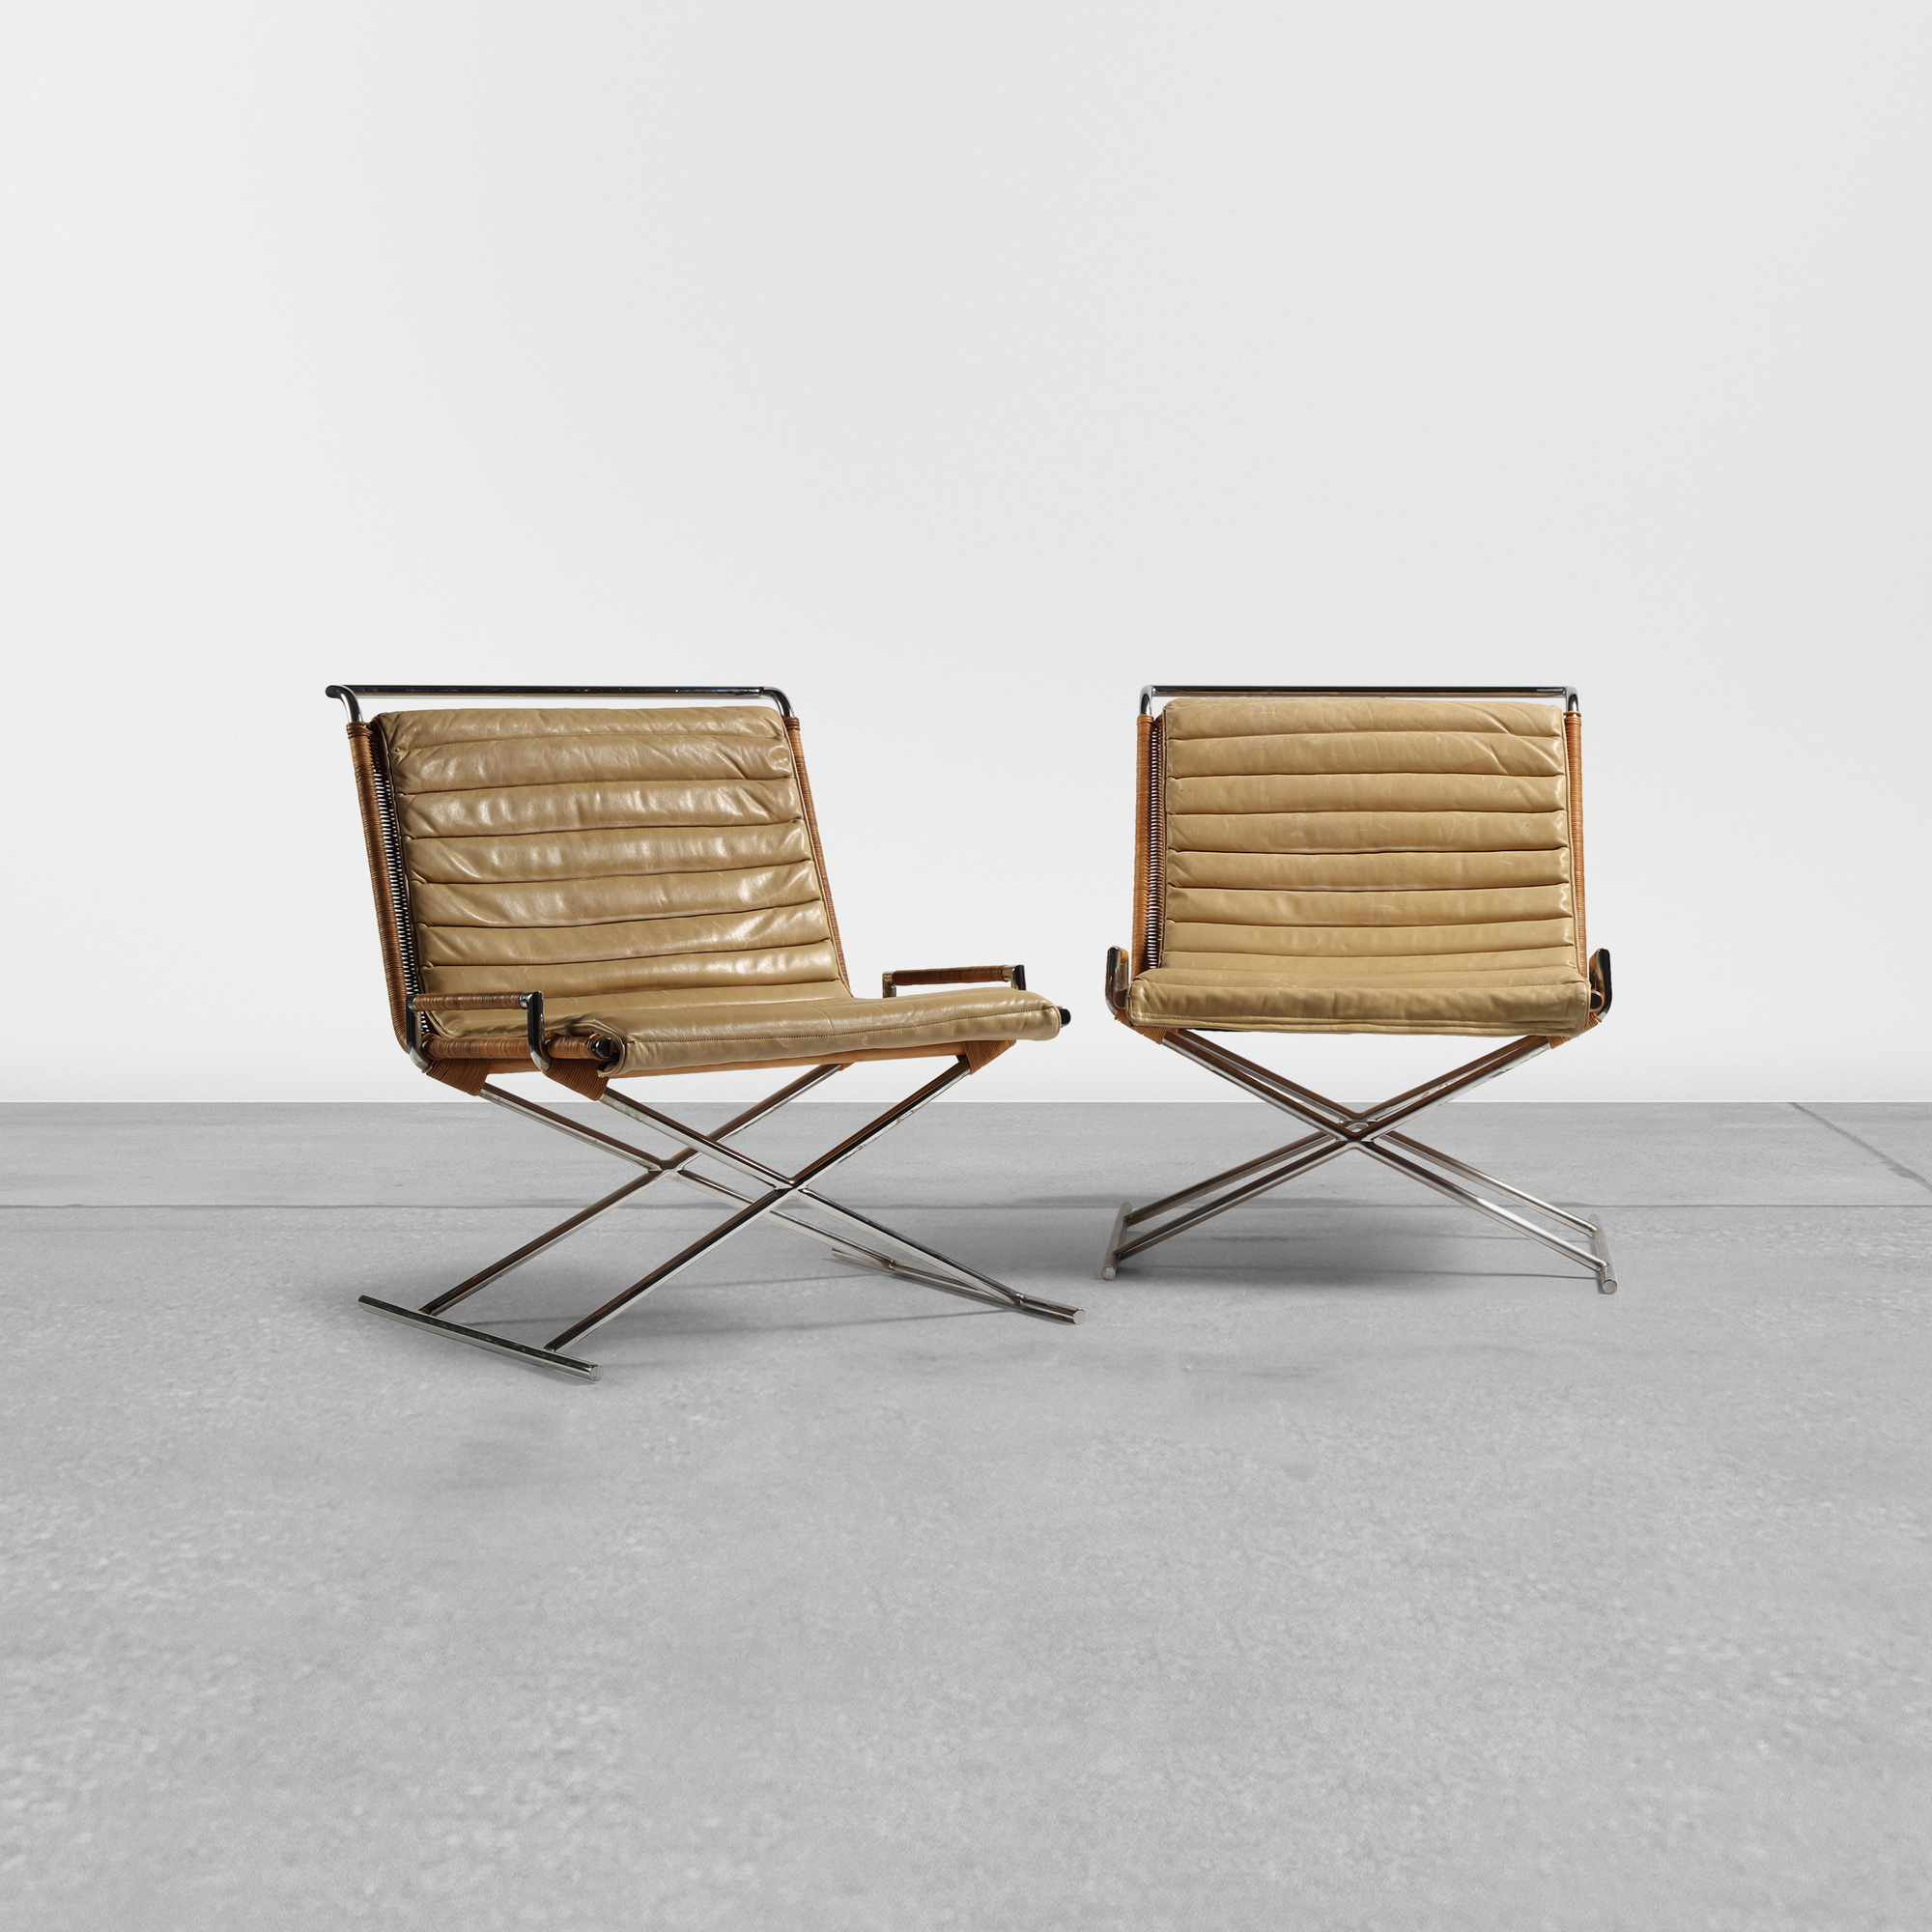 311: Ward Bennett / Sled chairs, pair (1 of 2)